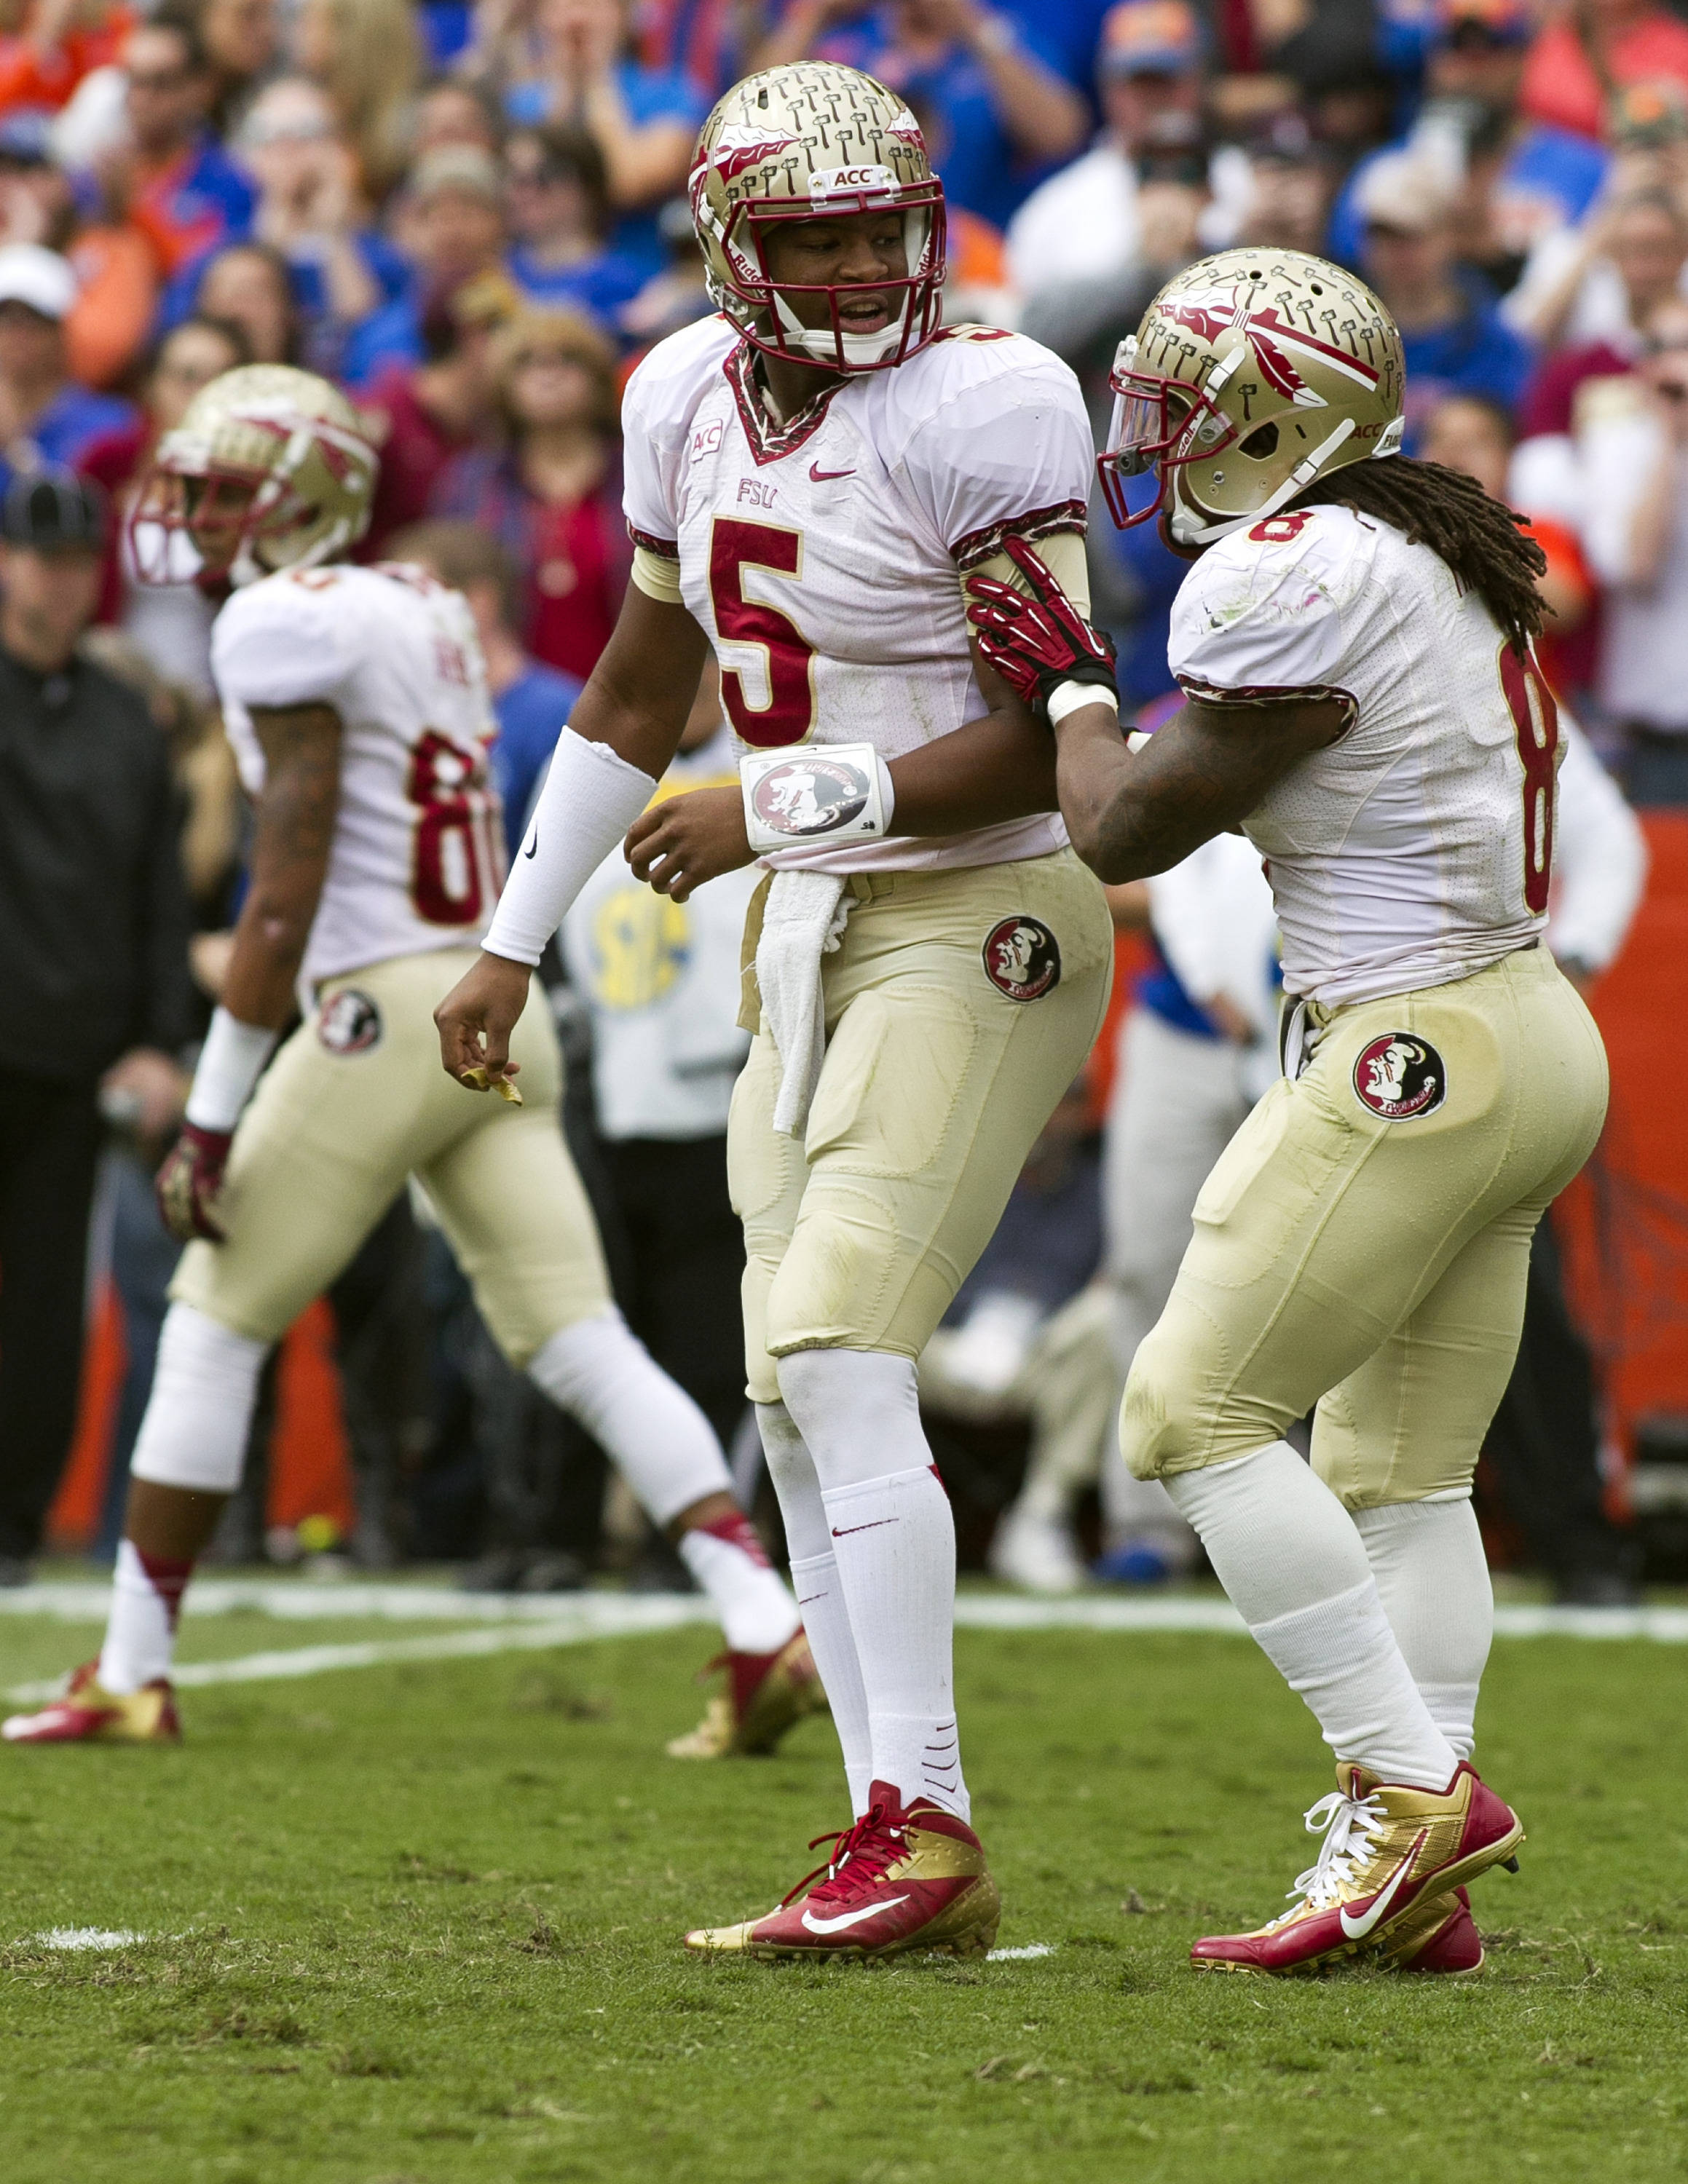 Jameis Winston (5) and Devonta Freeman getting their signals straight. FSU vs Florida, 11-30-13,  (Photo by Steve Musco)